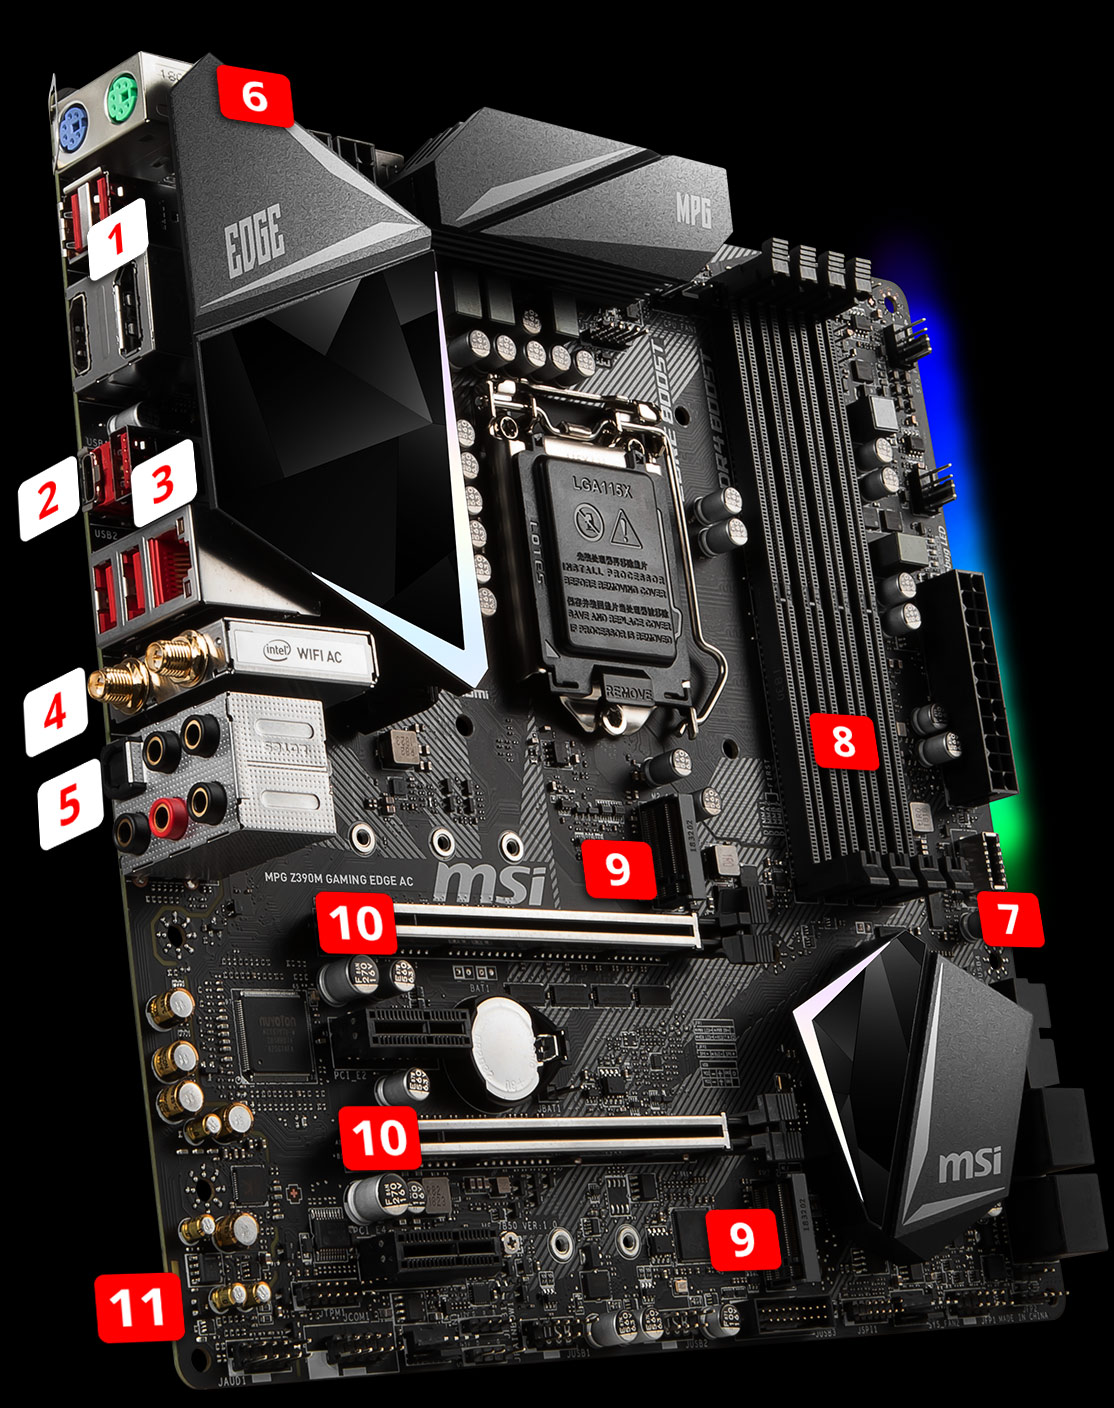 Mpg Z390m Gaming Edge Ac Motherboard The World Leader In Diagram Moreover Sata Power Cable Adapter On Usb To Perfect Balance